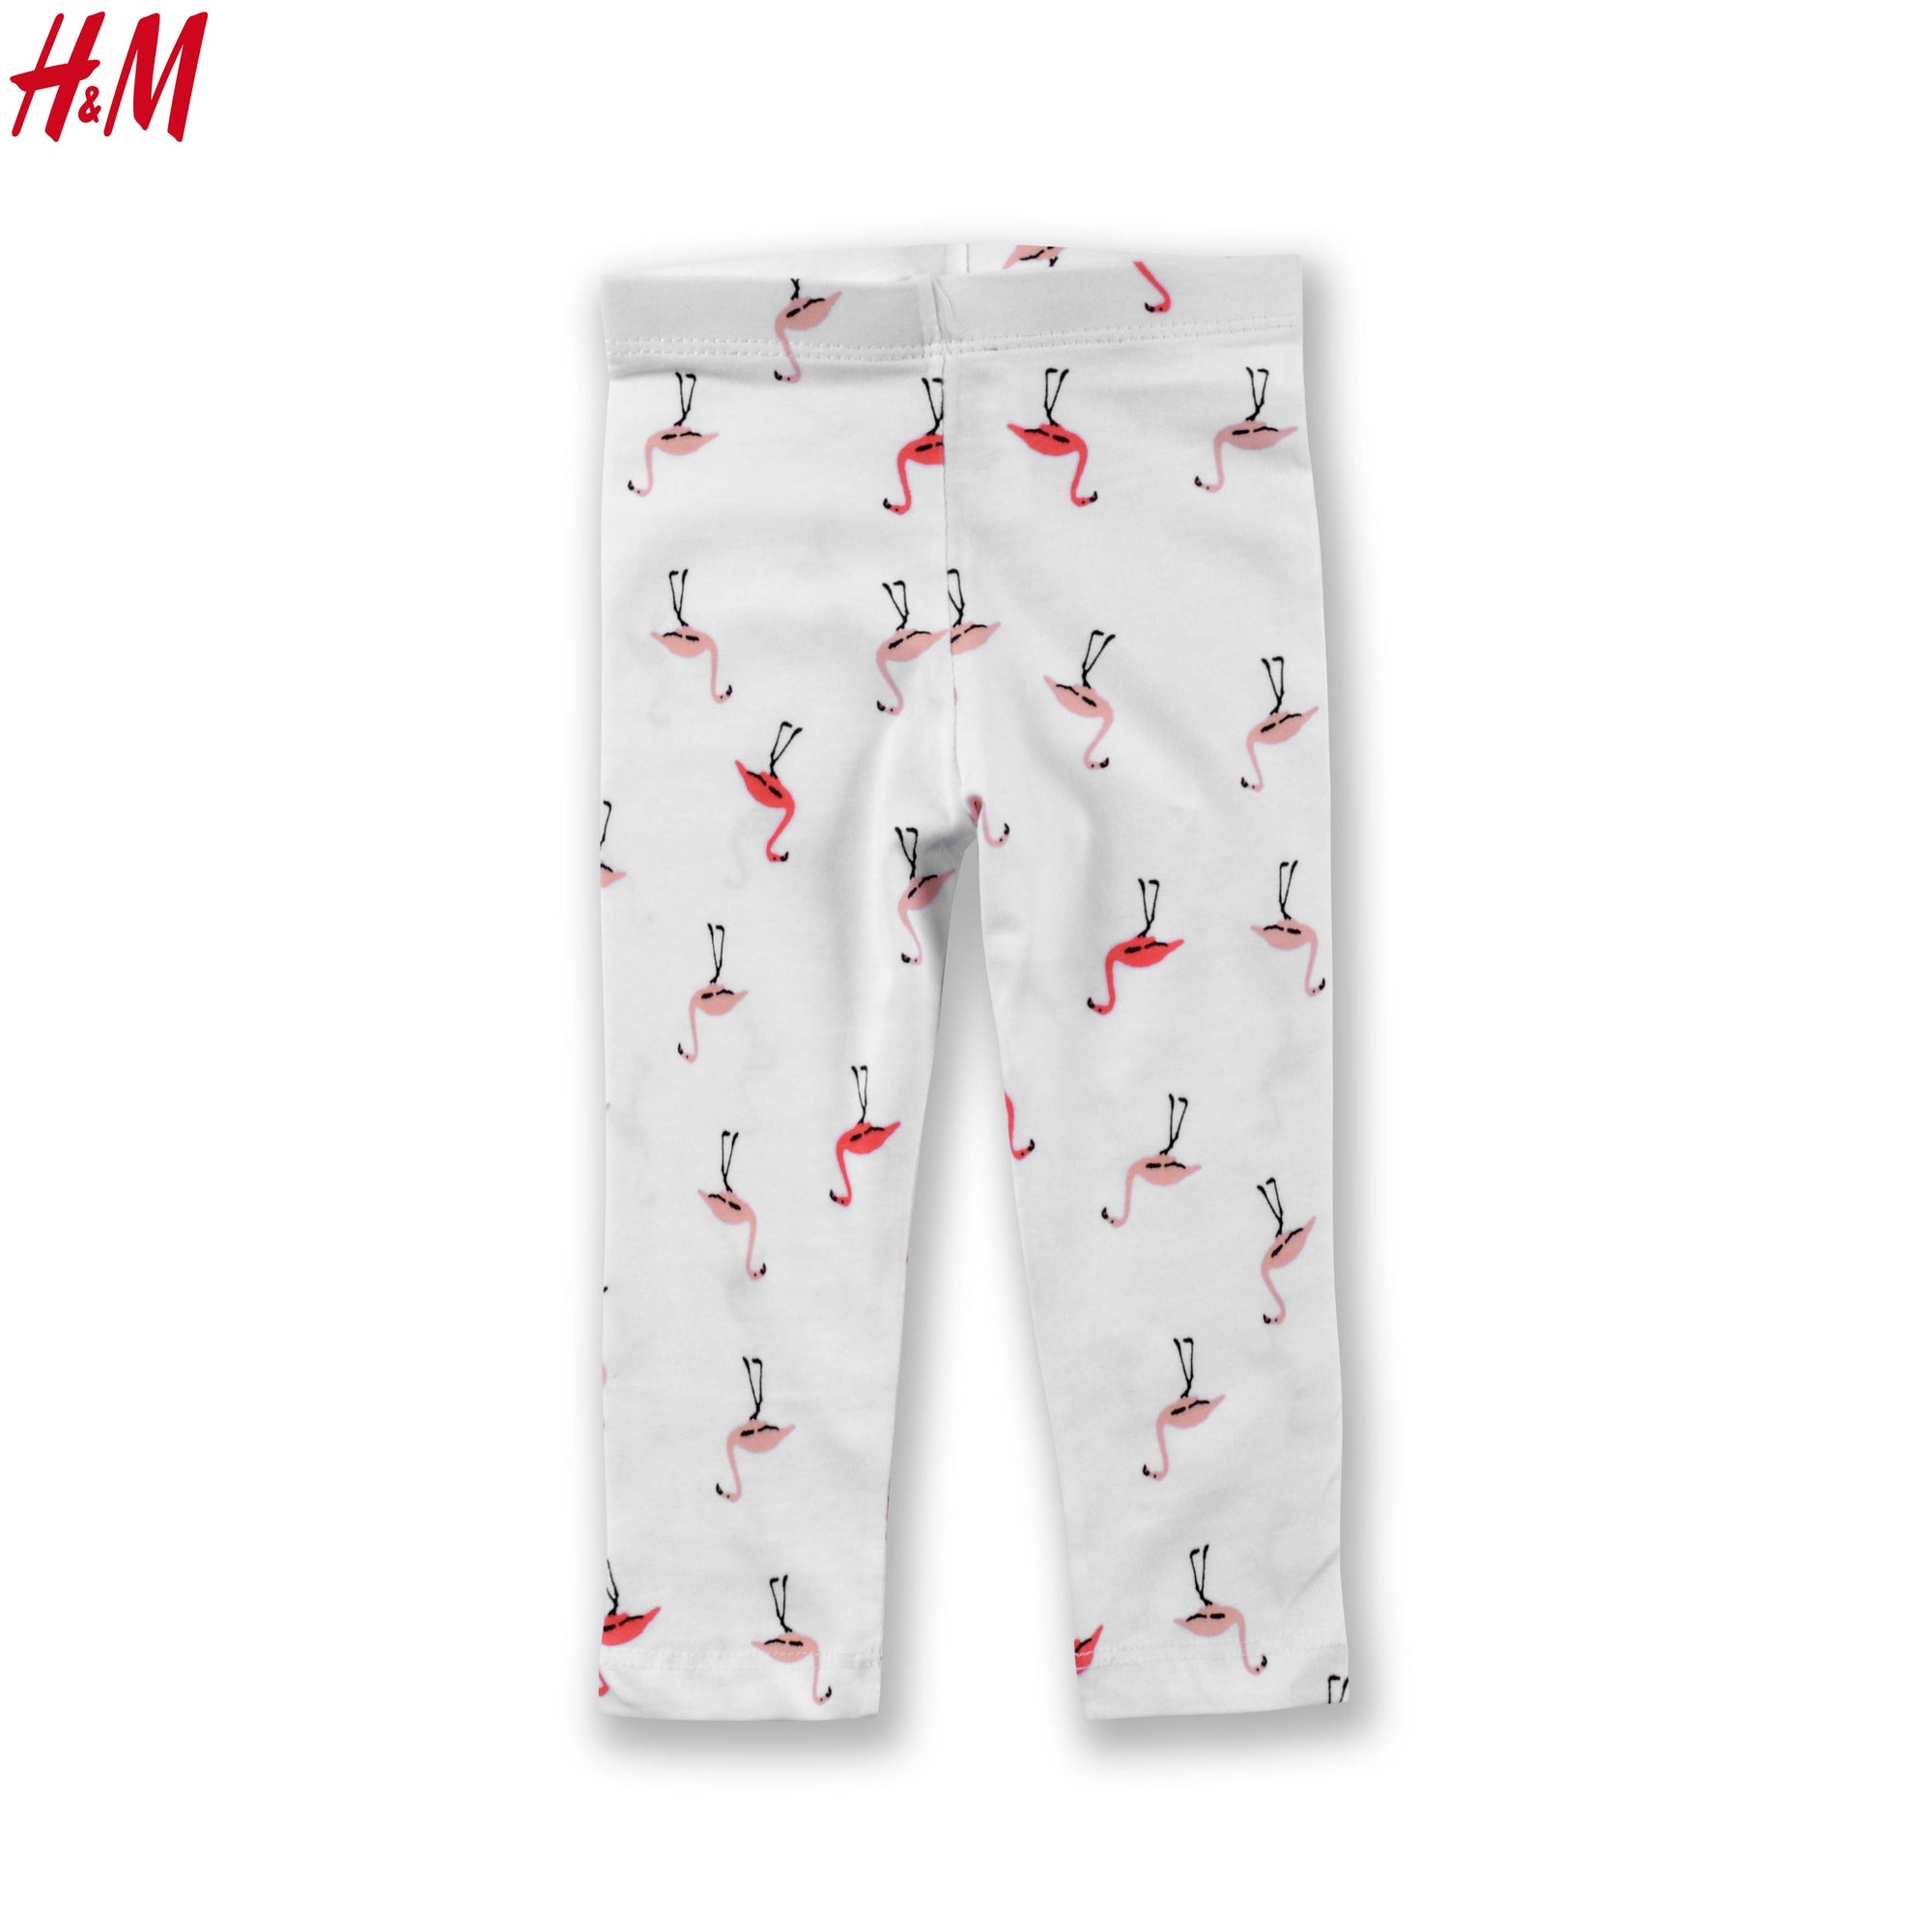 Leggings With Printed Designs